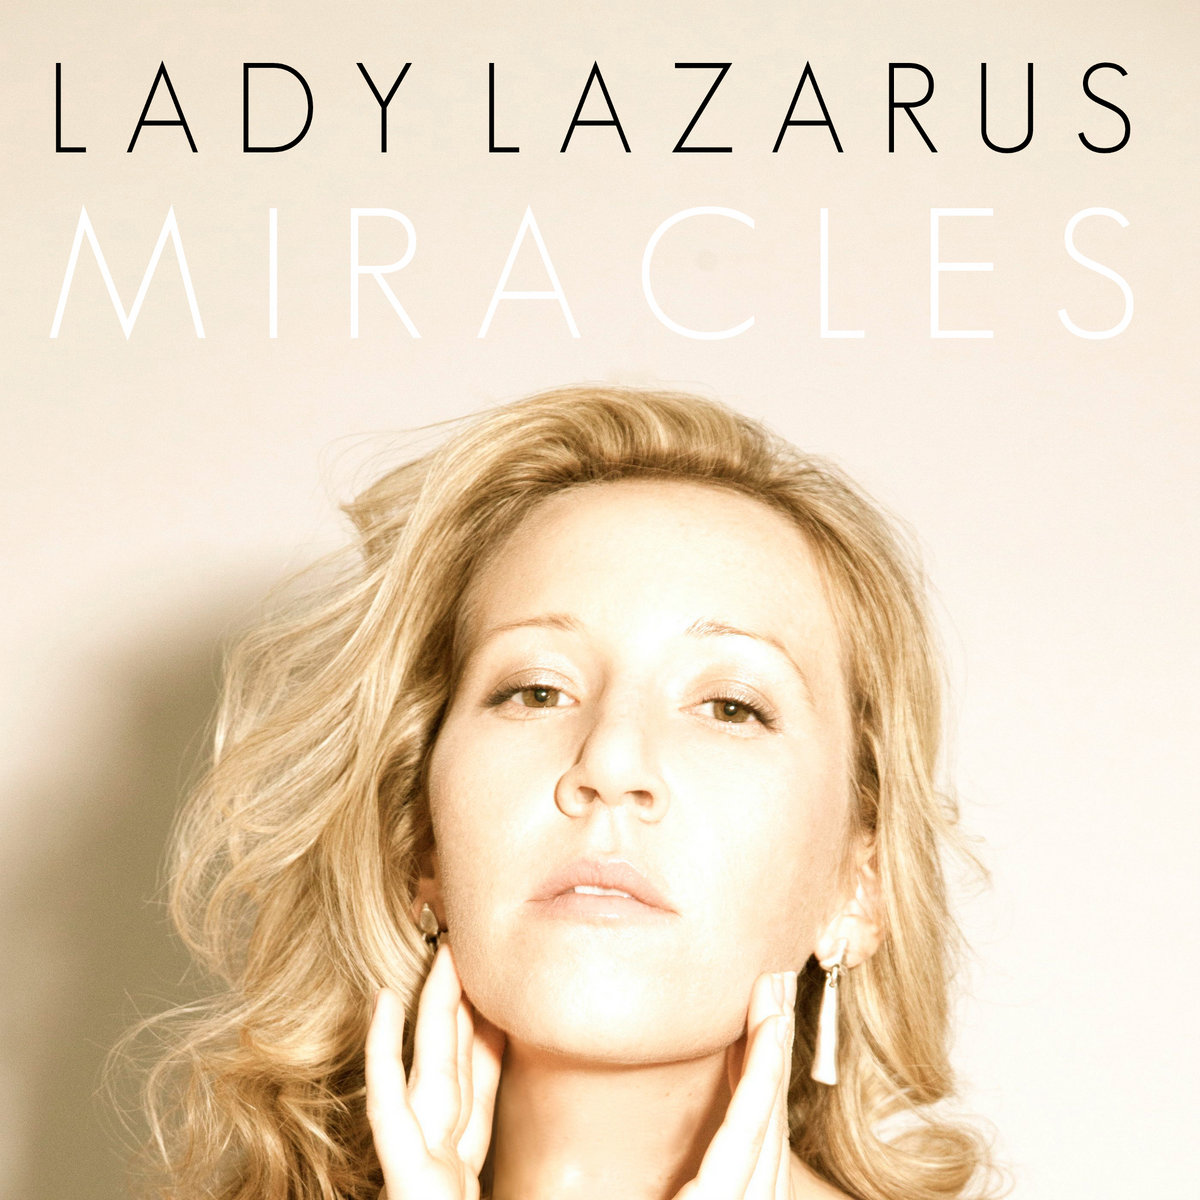 lady lazarus meaning